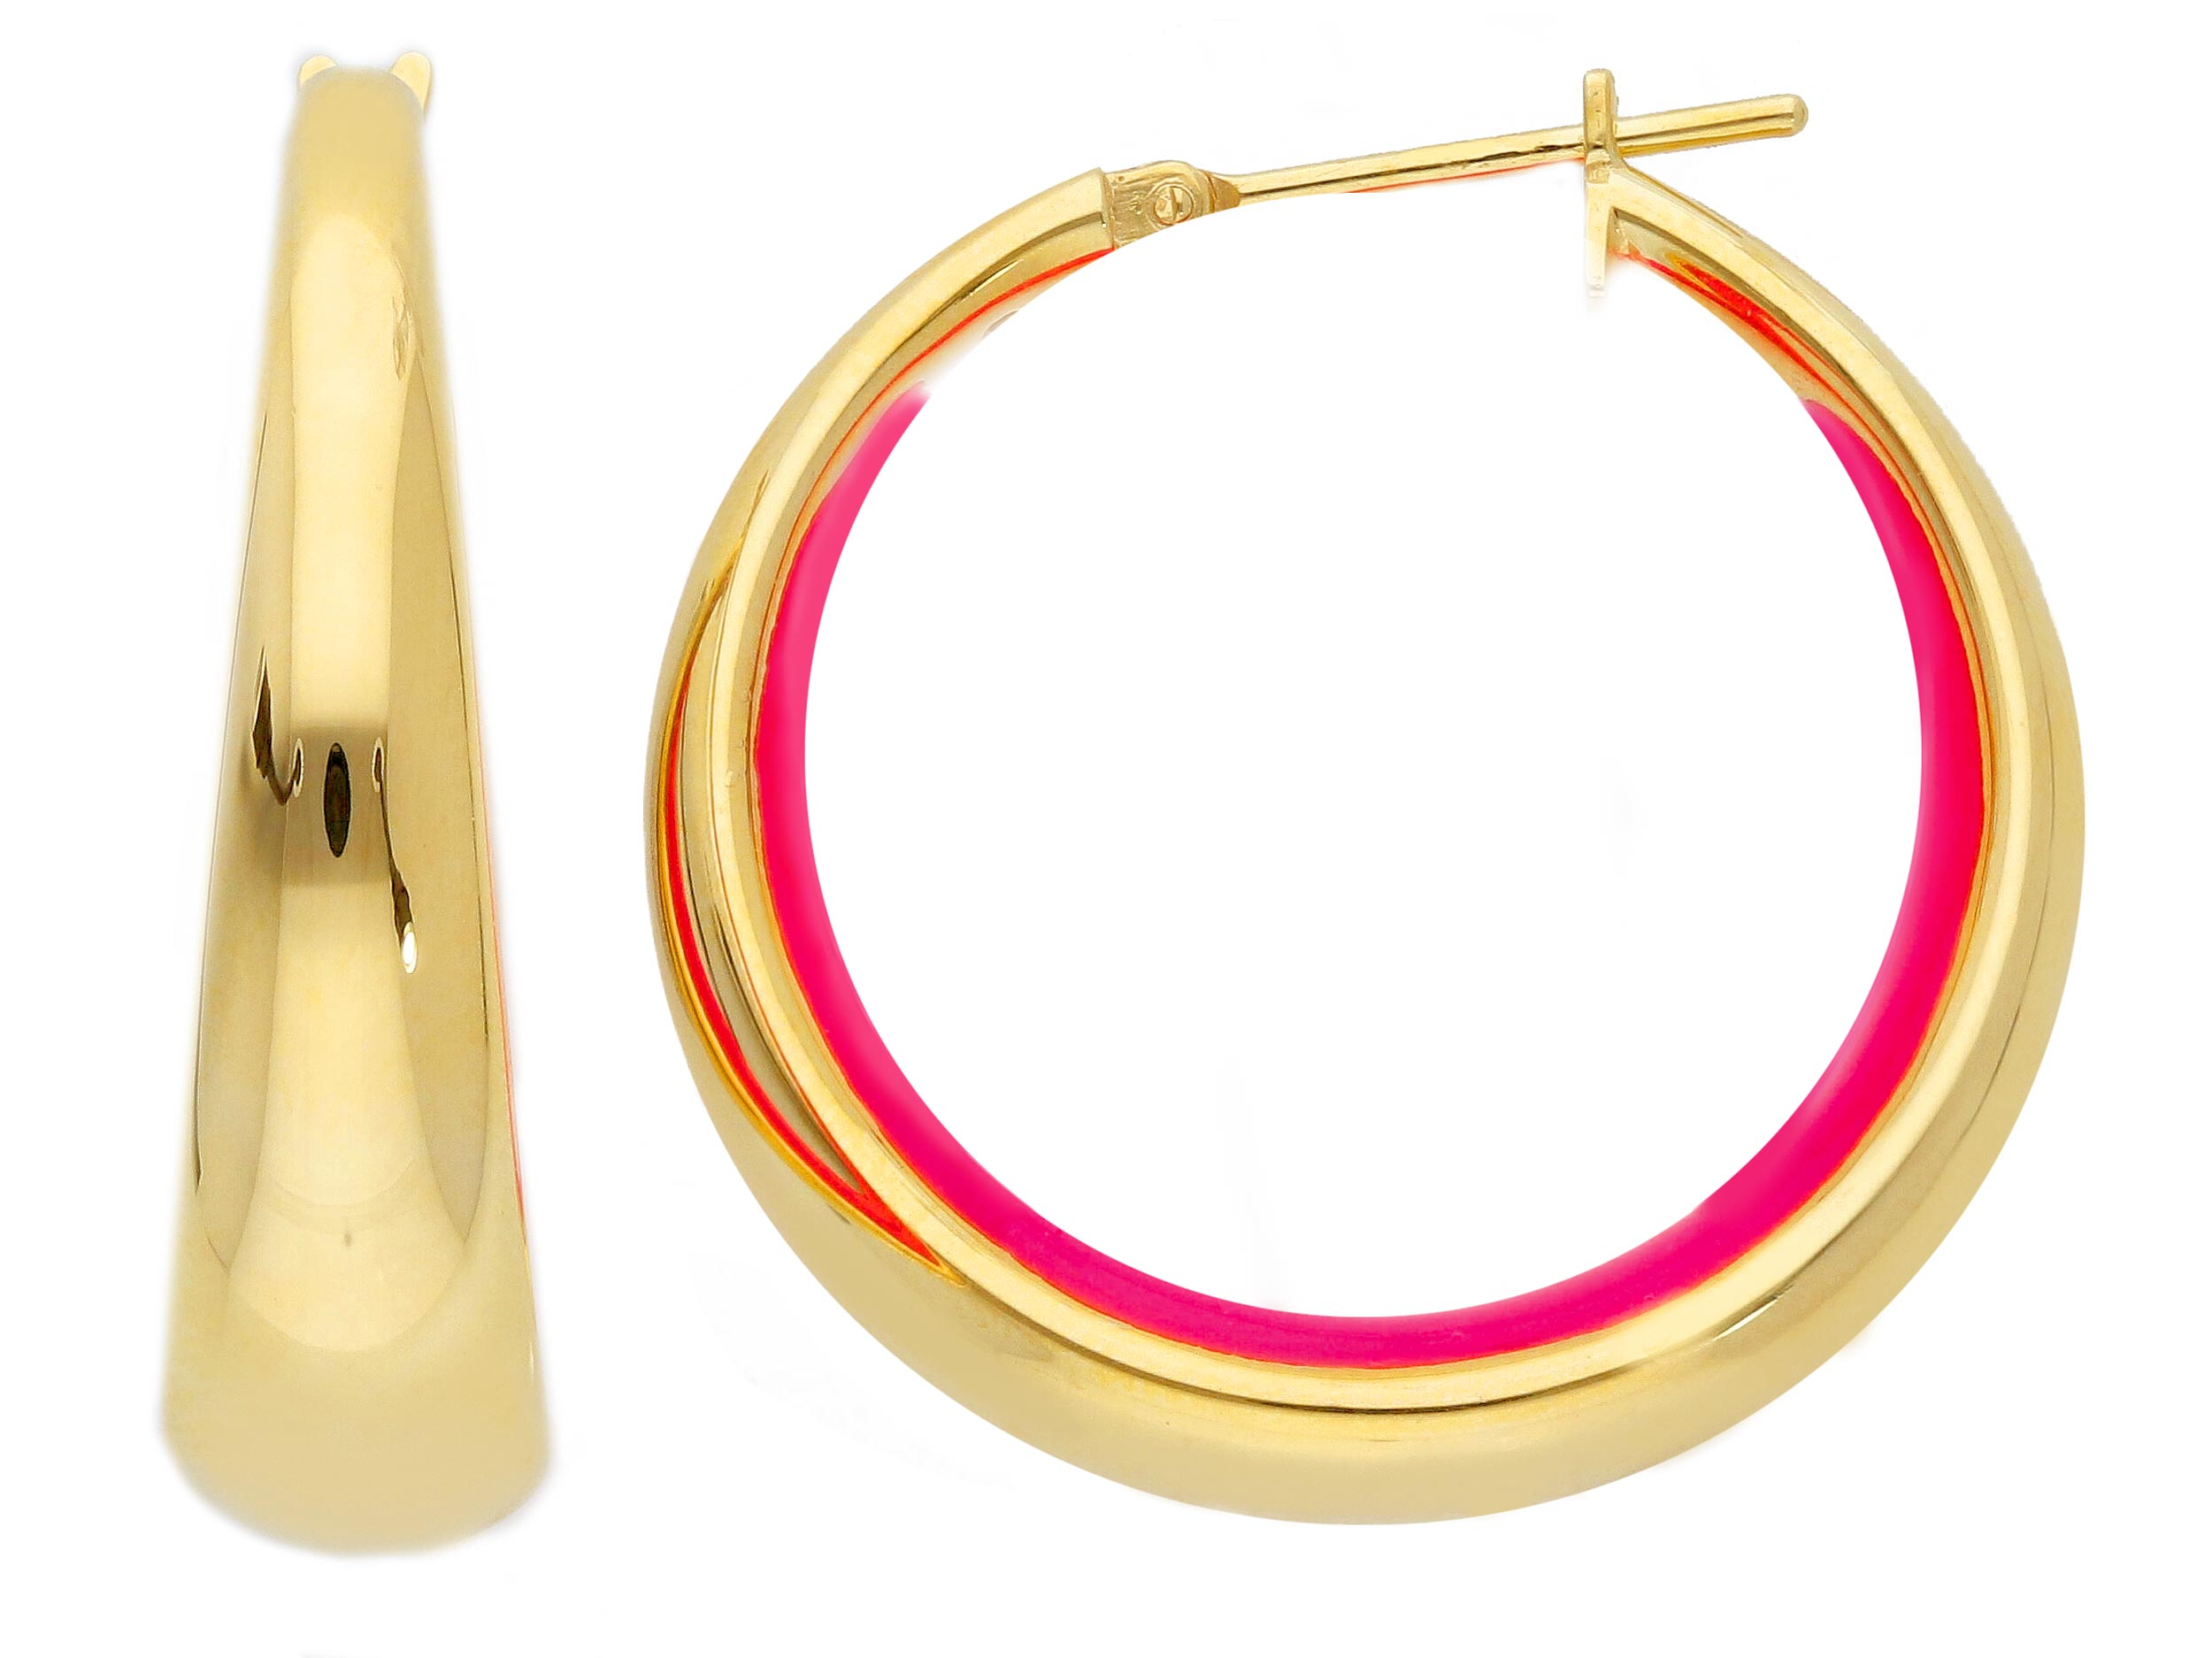 Beautiful 18ct Yellow Gold Hoop Earrings with Enamel. We have different colours of the enamel available . Contact us for more information about the colours of enamel, gold and stones in our shop.